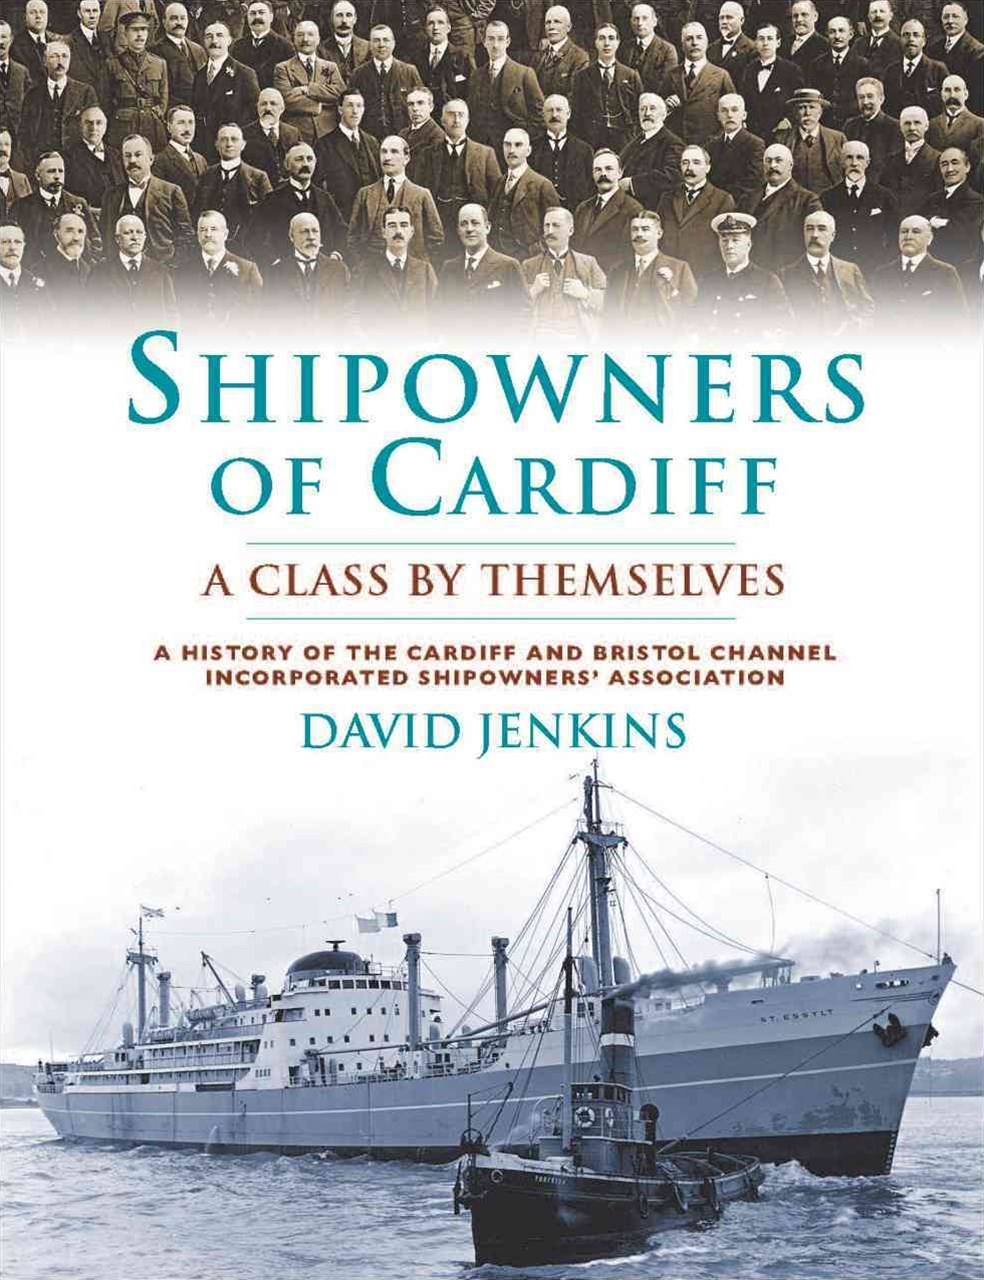 Shipowners of Cardiff - A Class by Themselves